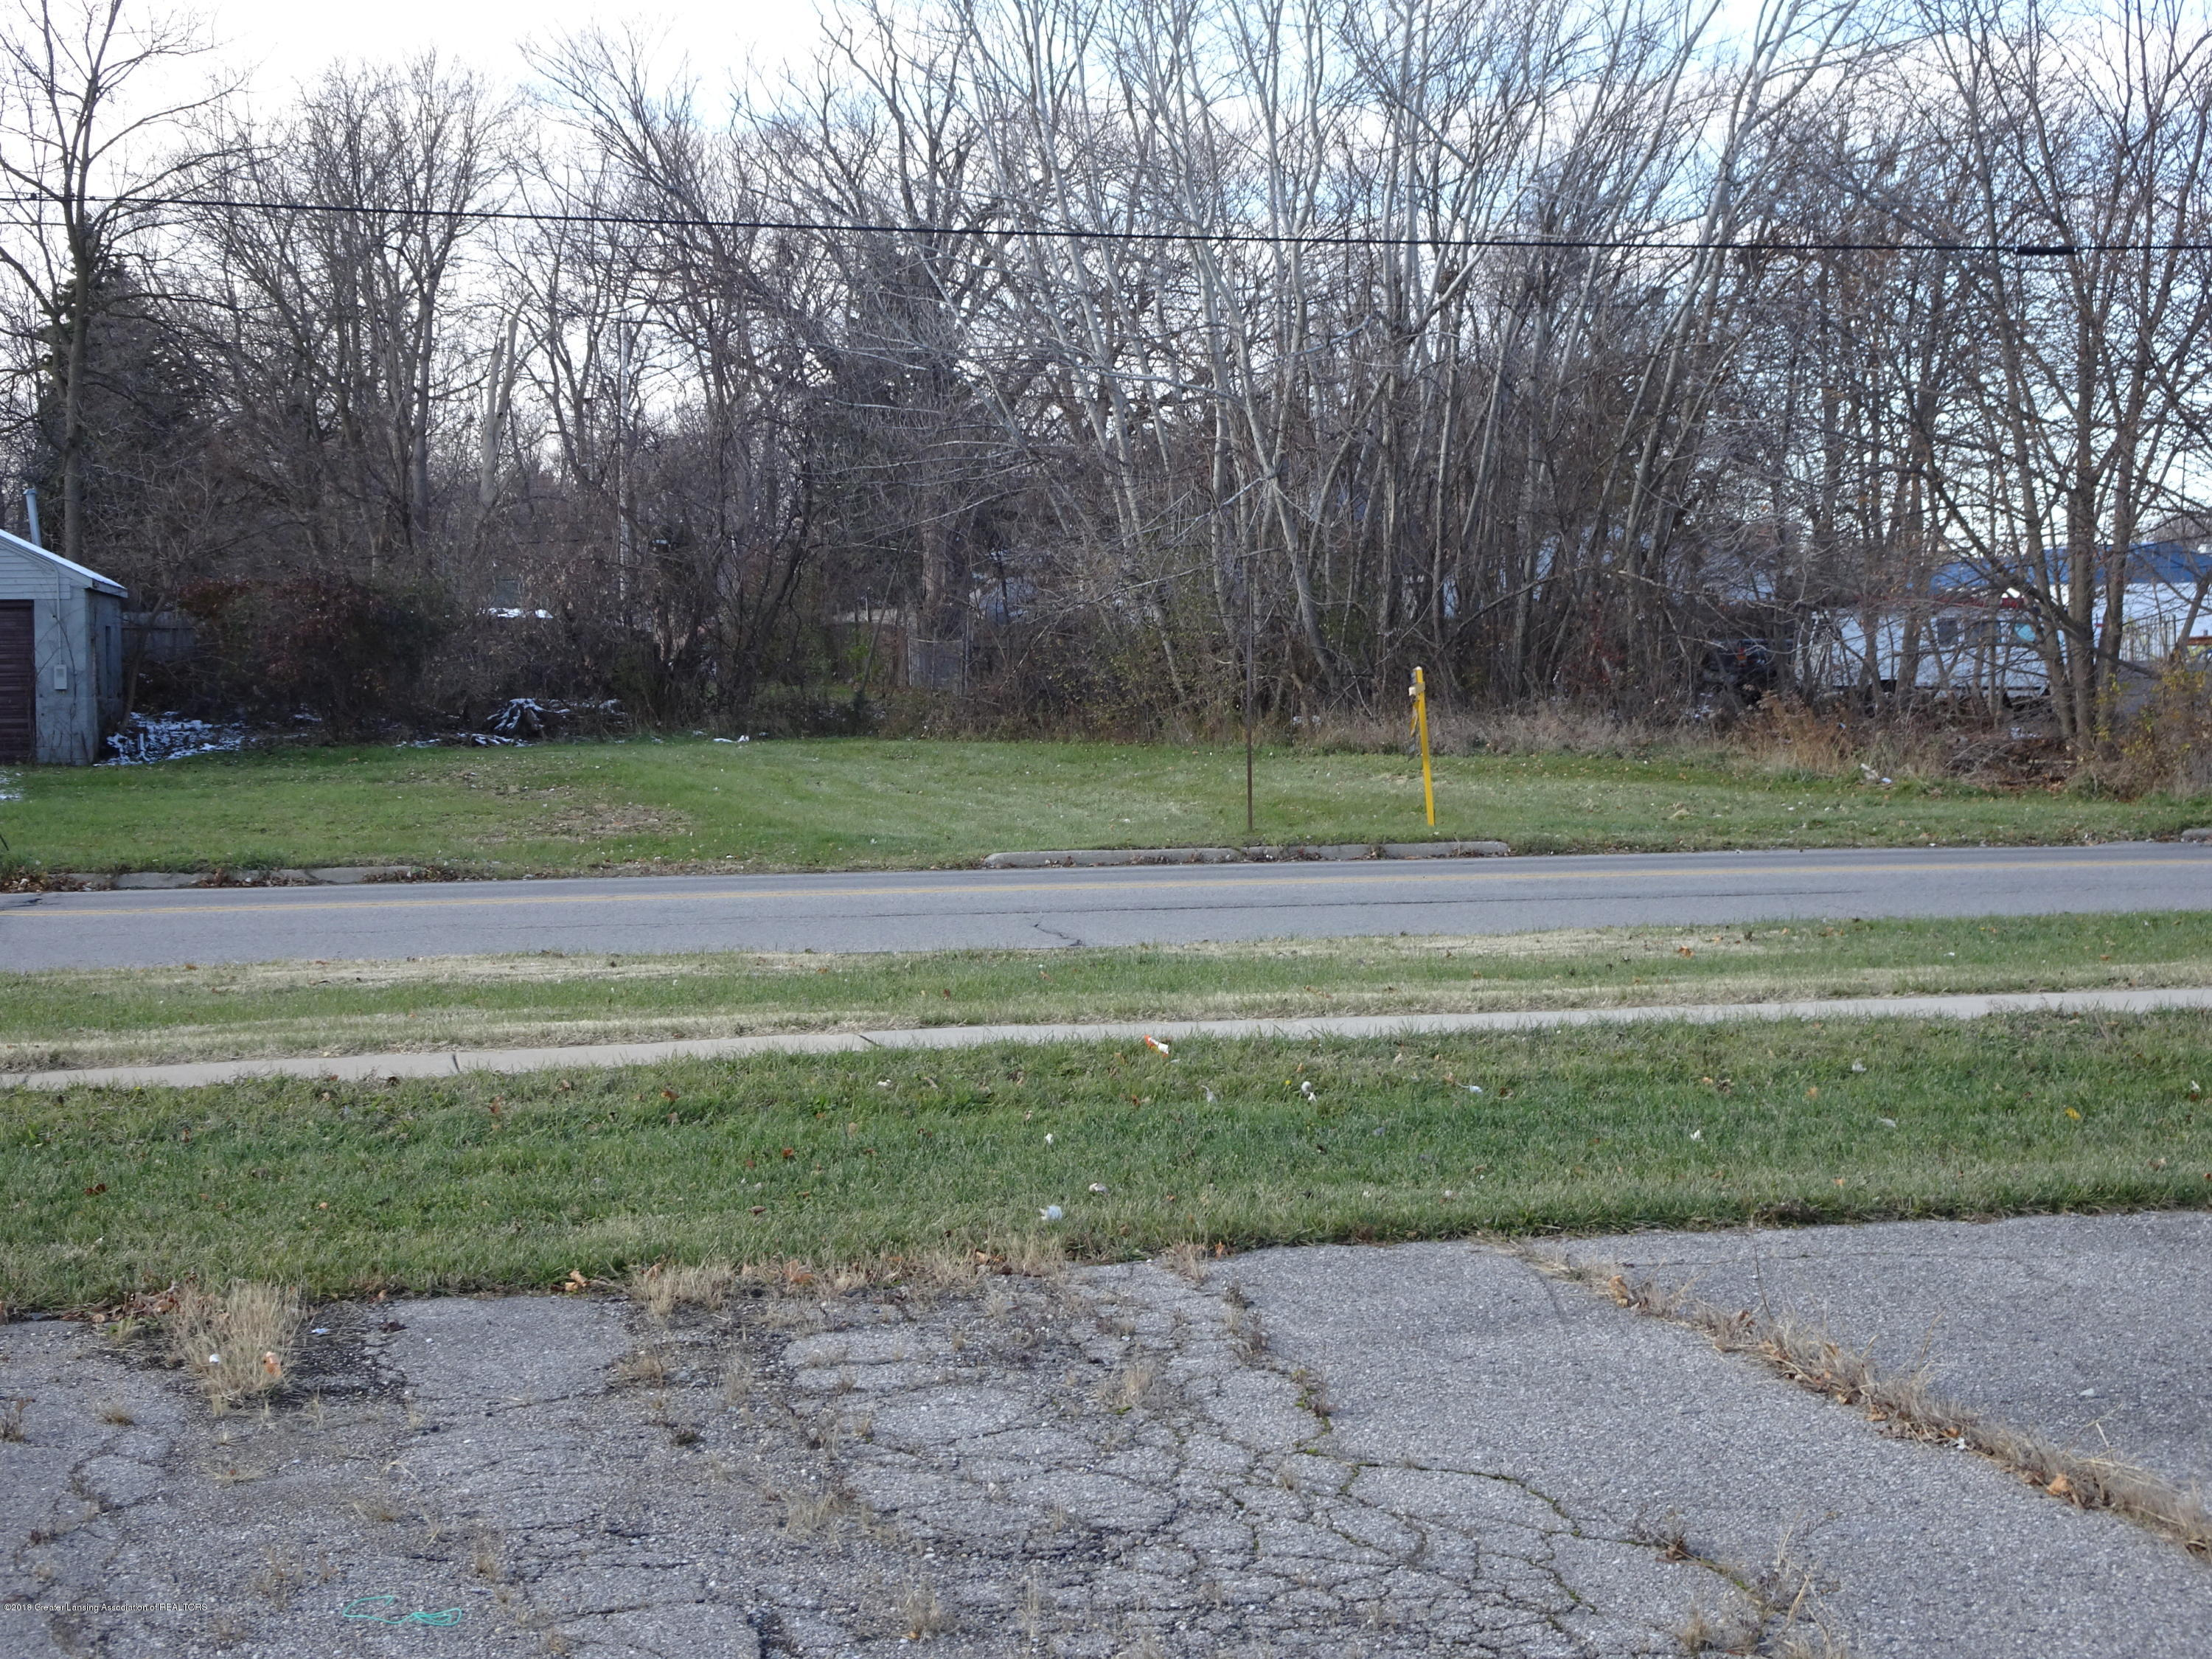 613 N Rosemary St - Vacant Land - 1